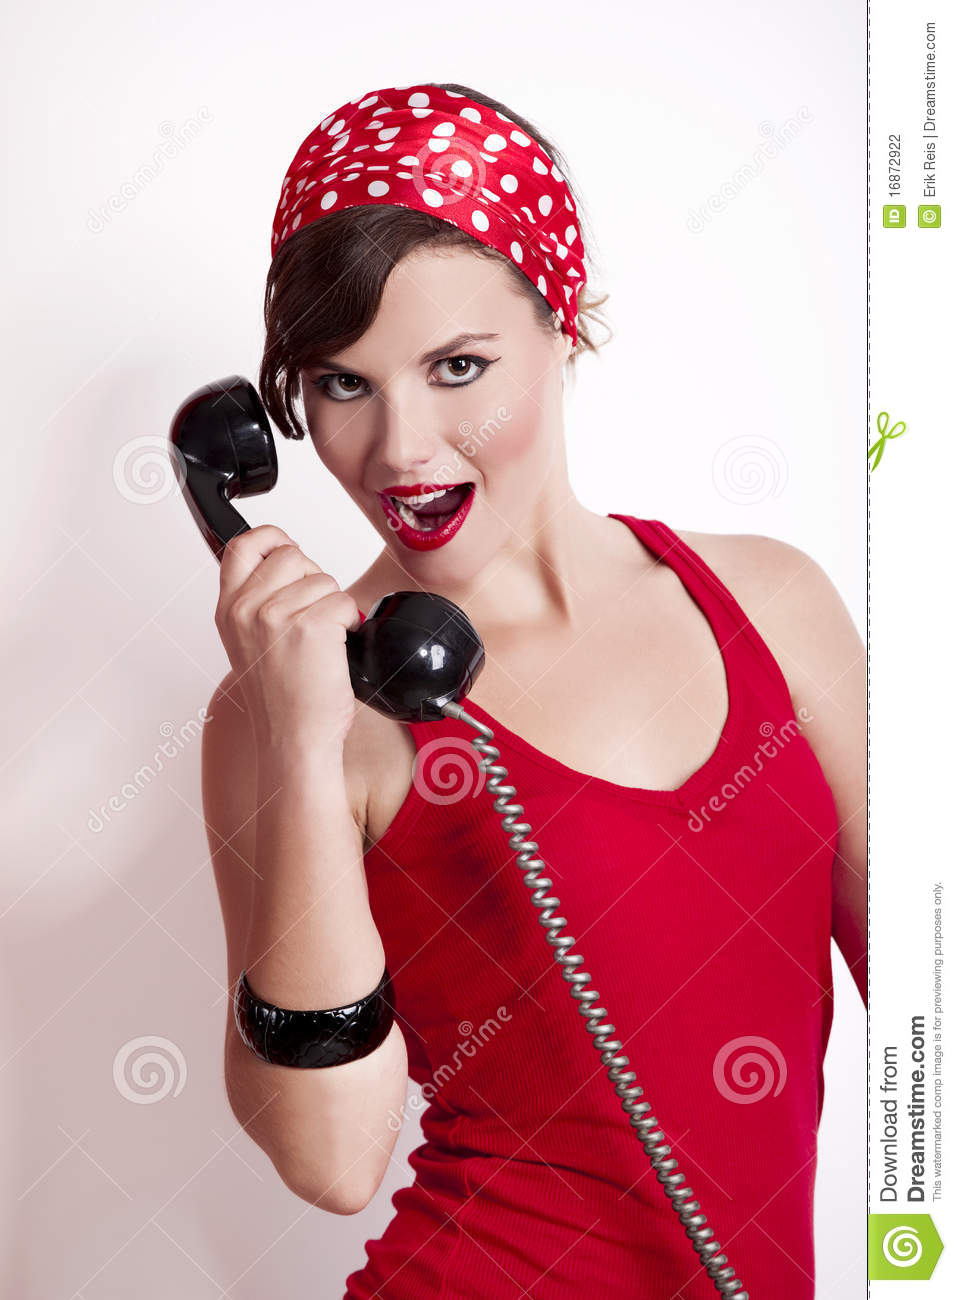 Girl With A Vintage Phone Stock Photo Image Of Attractive 16872922